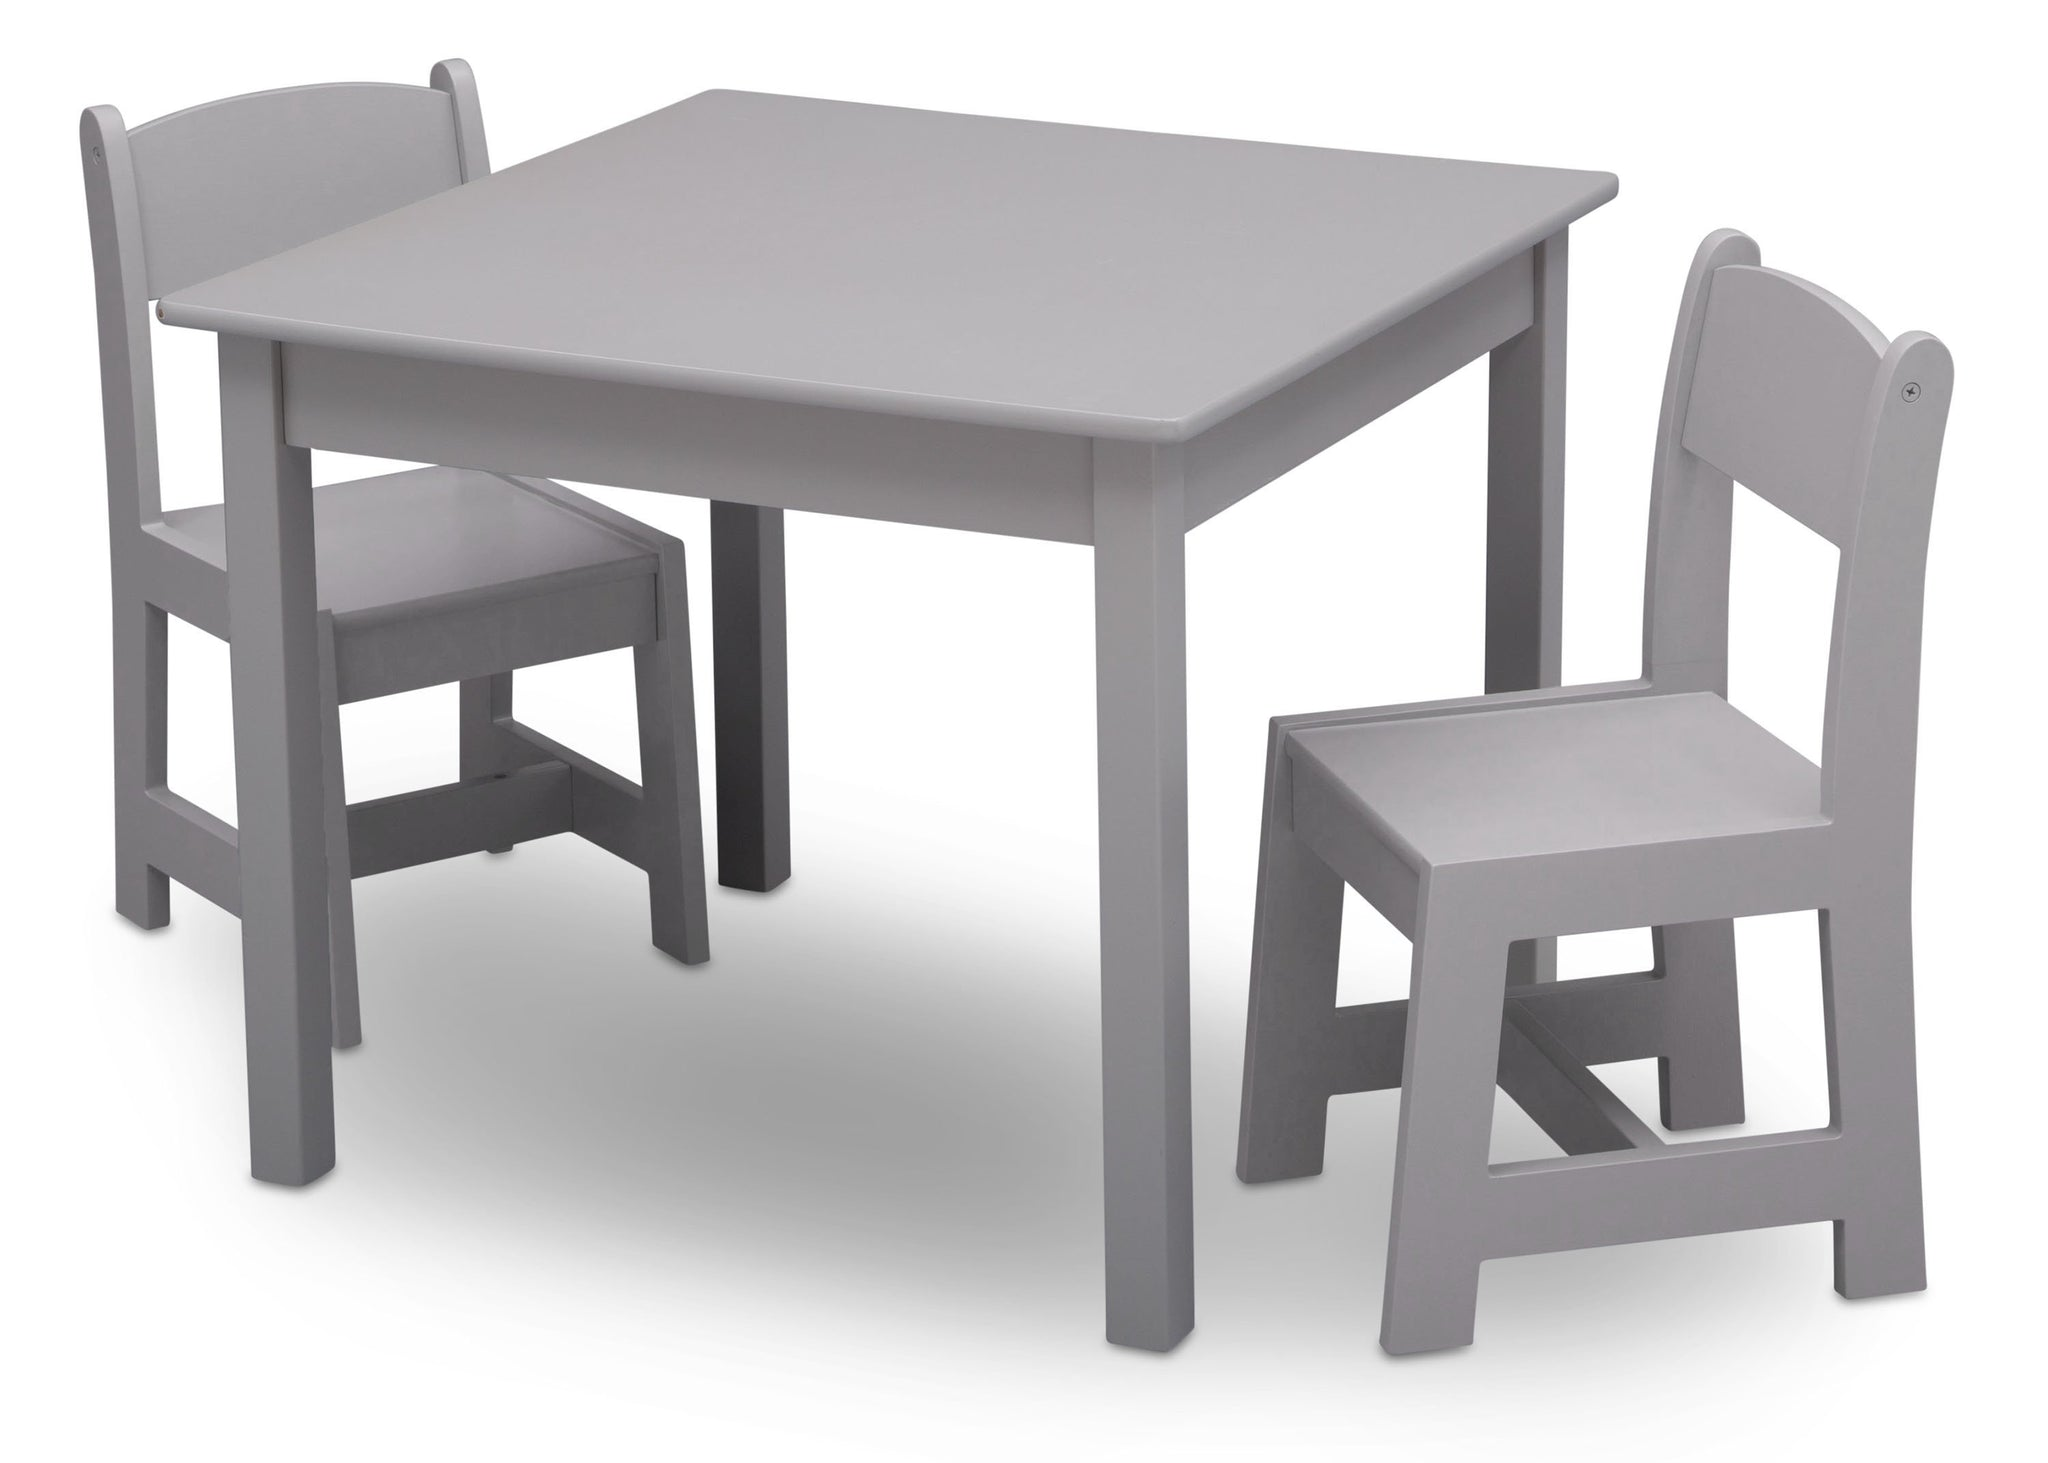 Delta Children Grey (026) MySize Table & Chairs Set, Left Angle, a3a